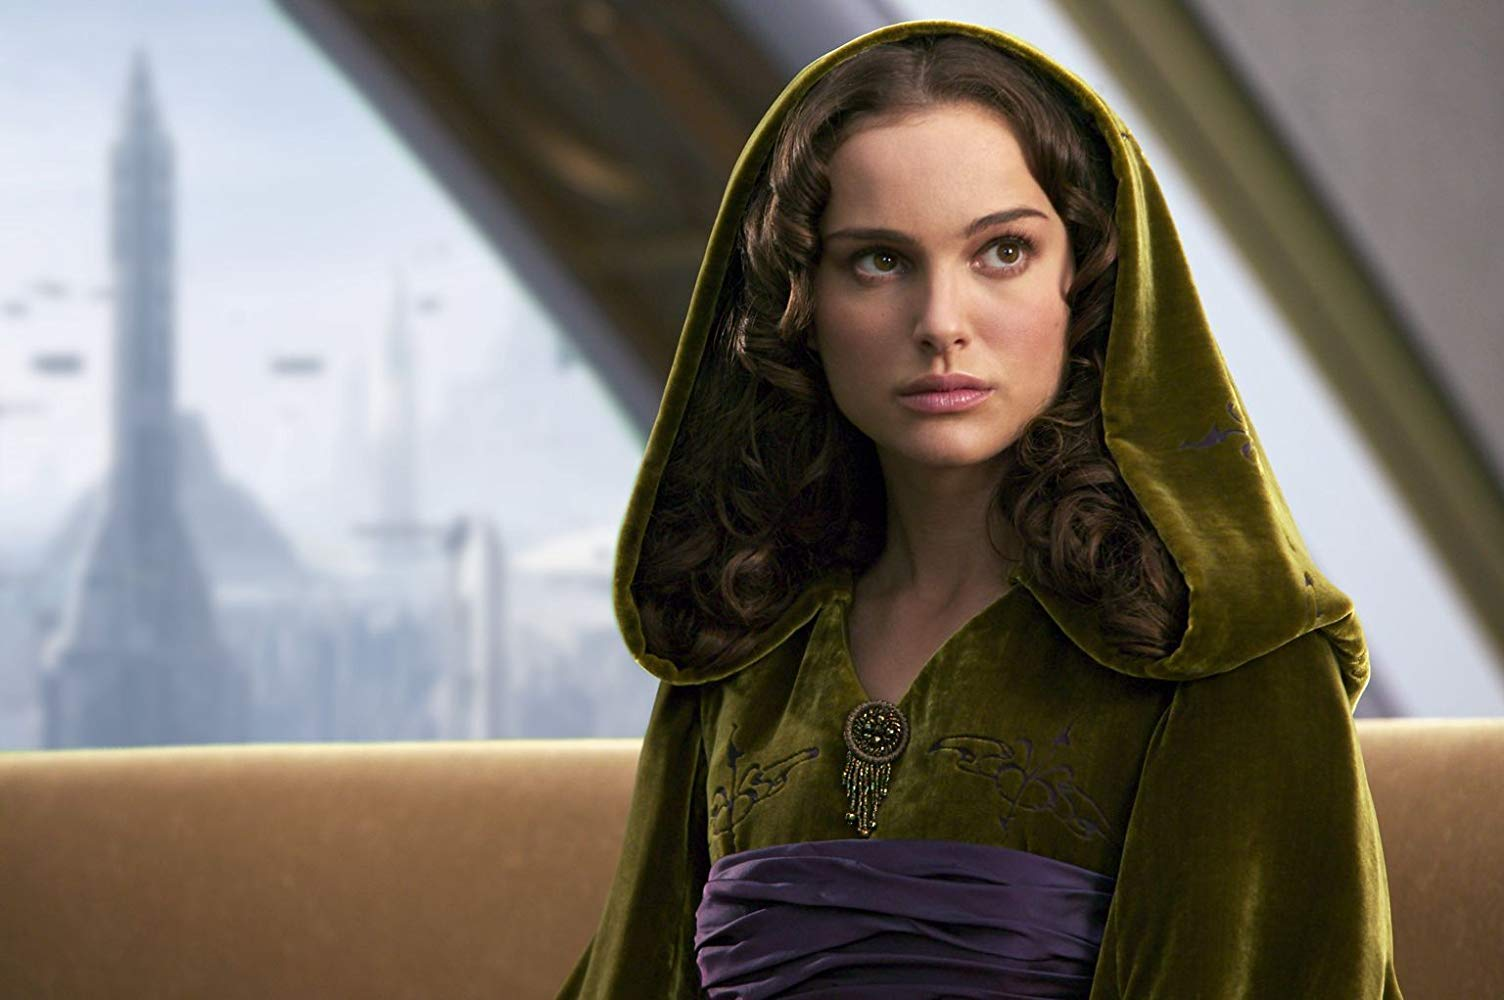 Padme Amidala wears a green dress in her apartment on Coruscant